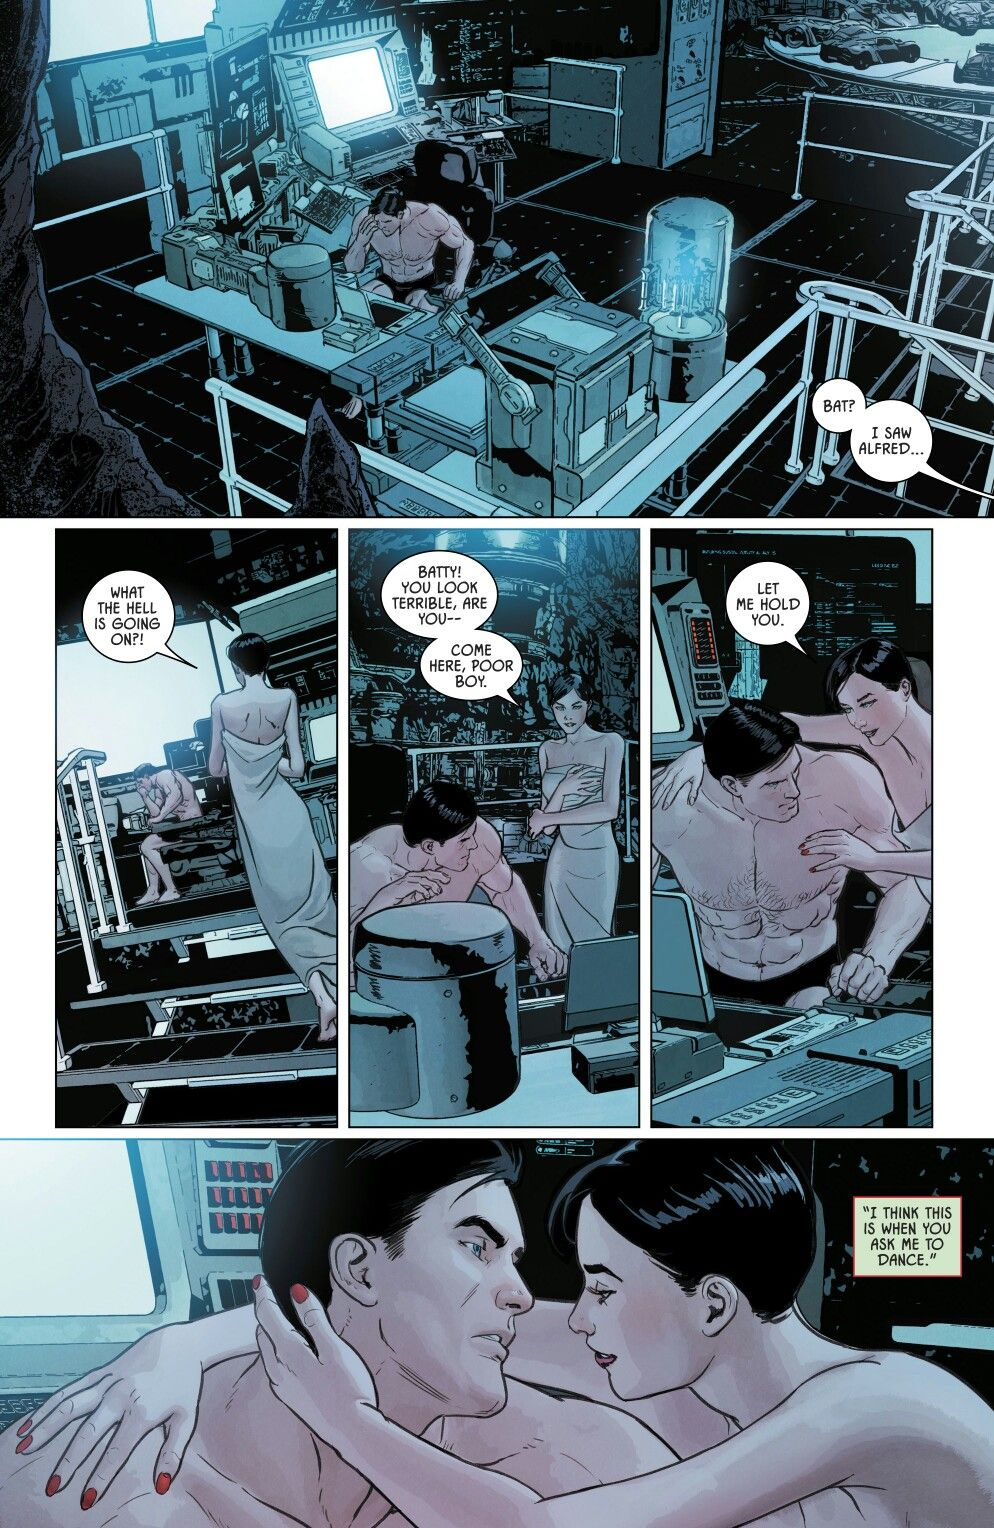 bane and catwoman relationship quiz